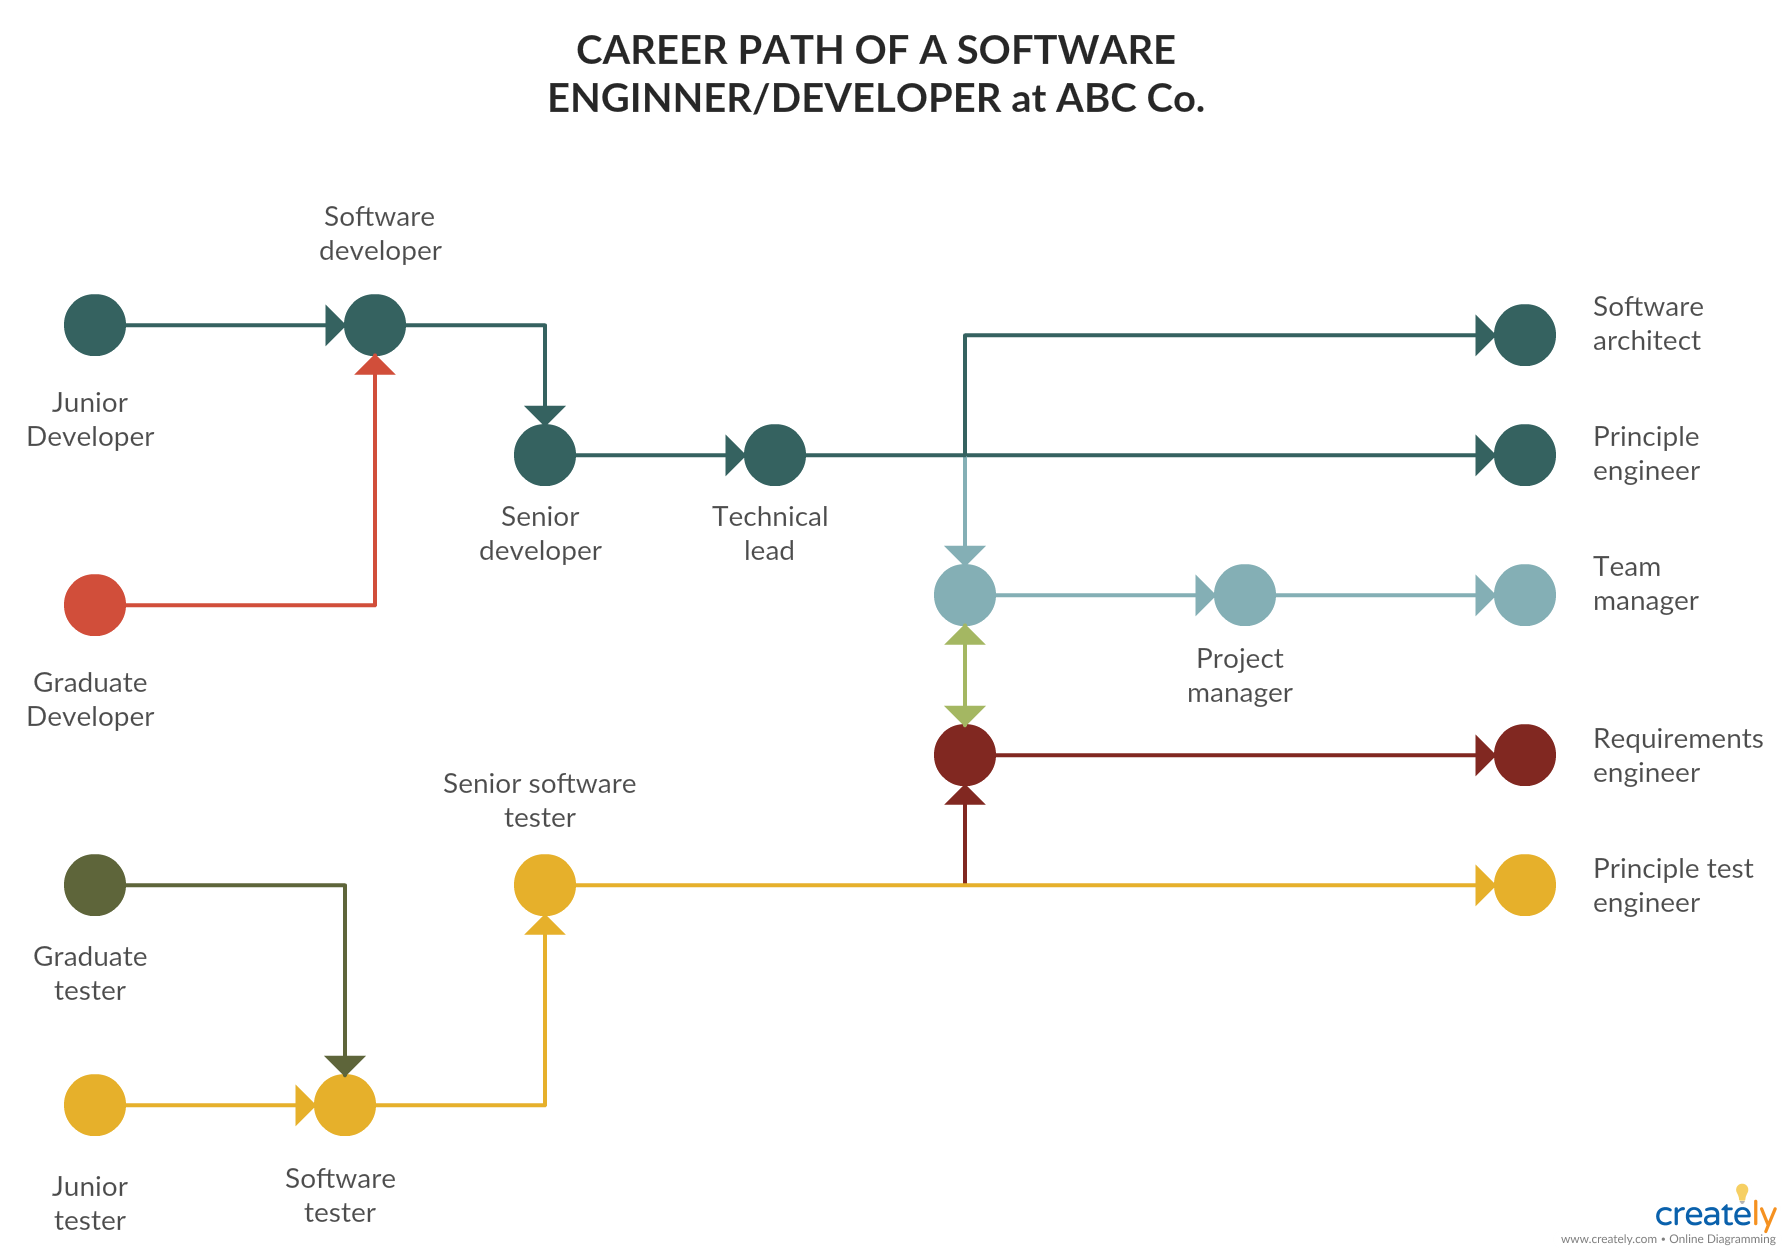 Software Engineer Career Path You Can Edit This Template And Create Your Own Diagram Creately Diagrams Software Engineer Career Path Career Development Plan